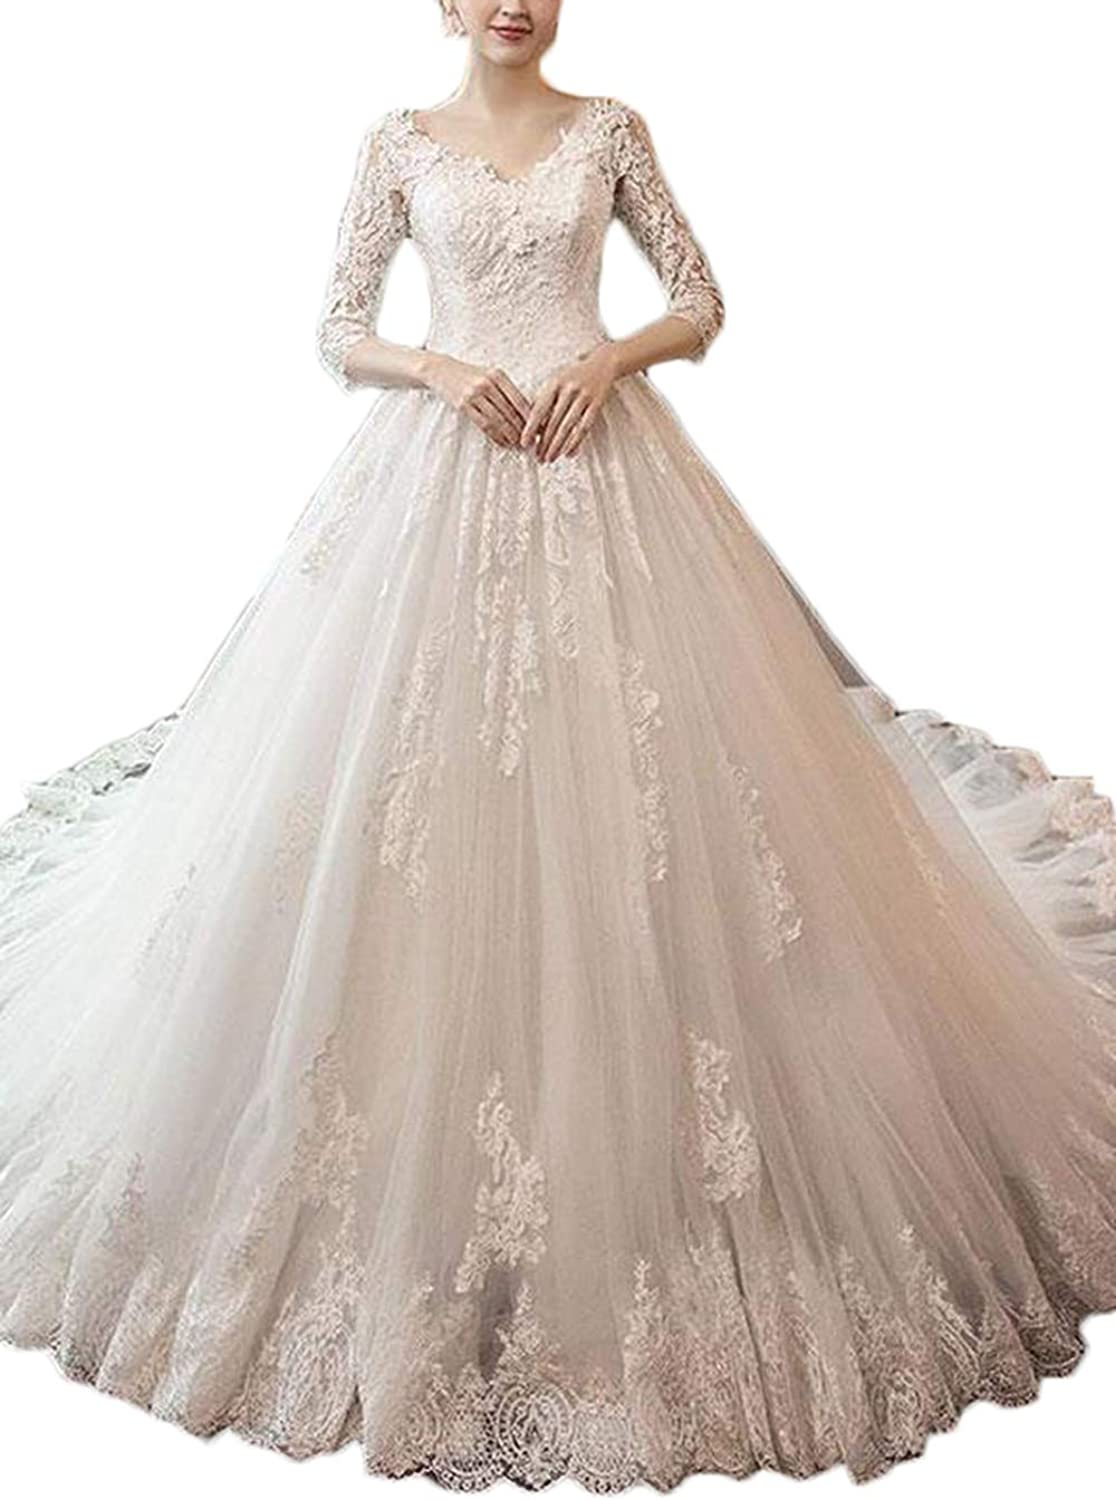 Alilith.Z Elegant V Neck Lace Wedding Dresses for Bride 2019 Ball Gown 3 4 Sleeves Cathedral Bridal Wedding Gowns